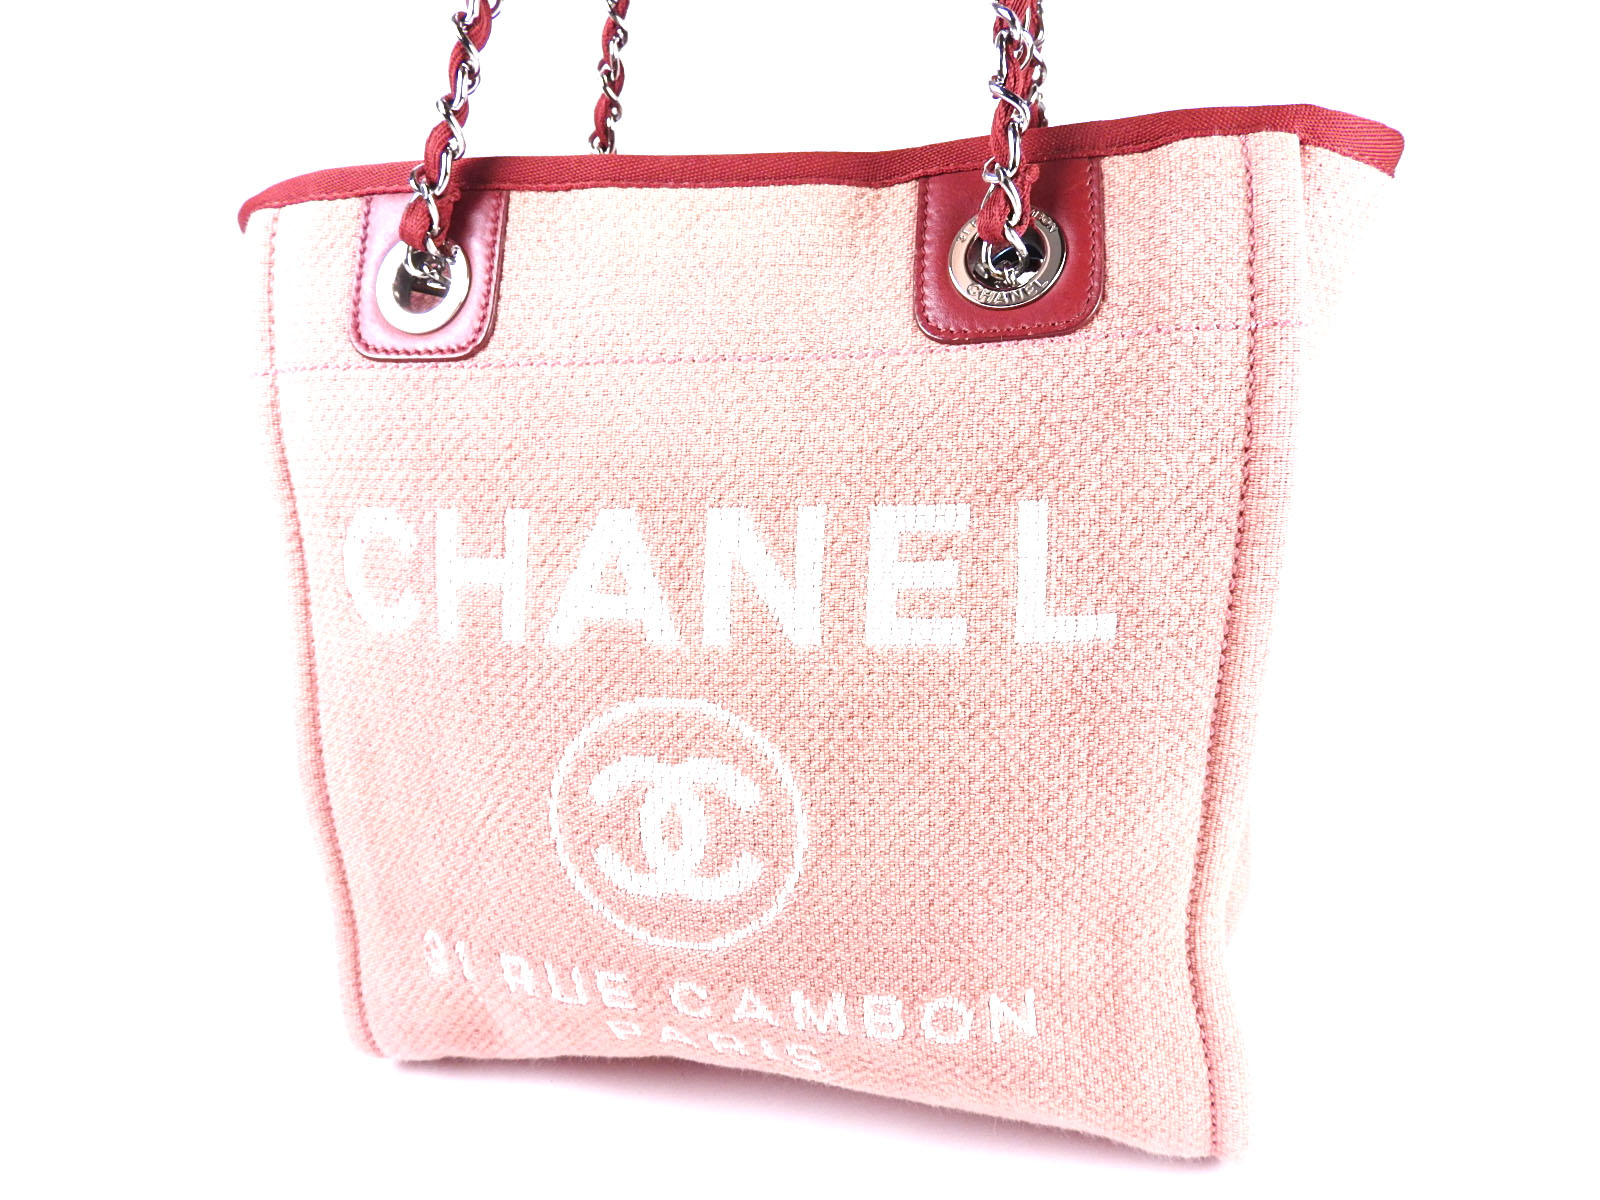 9ad706c2611bfb Auth CHANEL Deauville PM CC Chain Shoulder Tote Bag Canvas Red Pink A66939  A4718   eBay